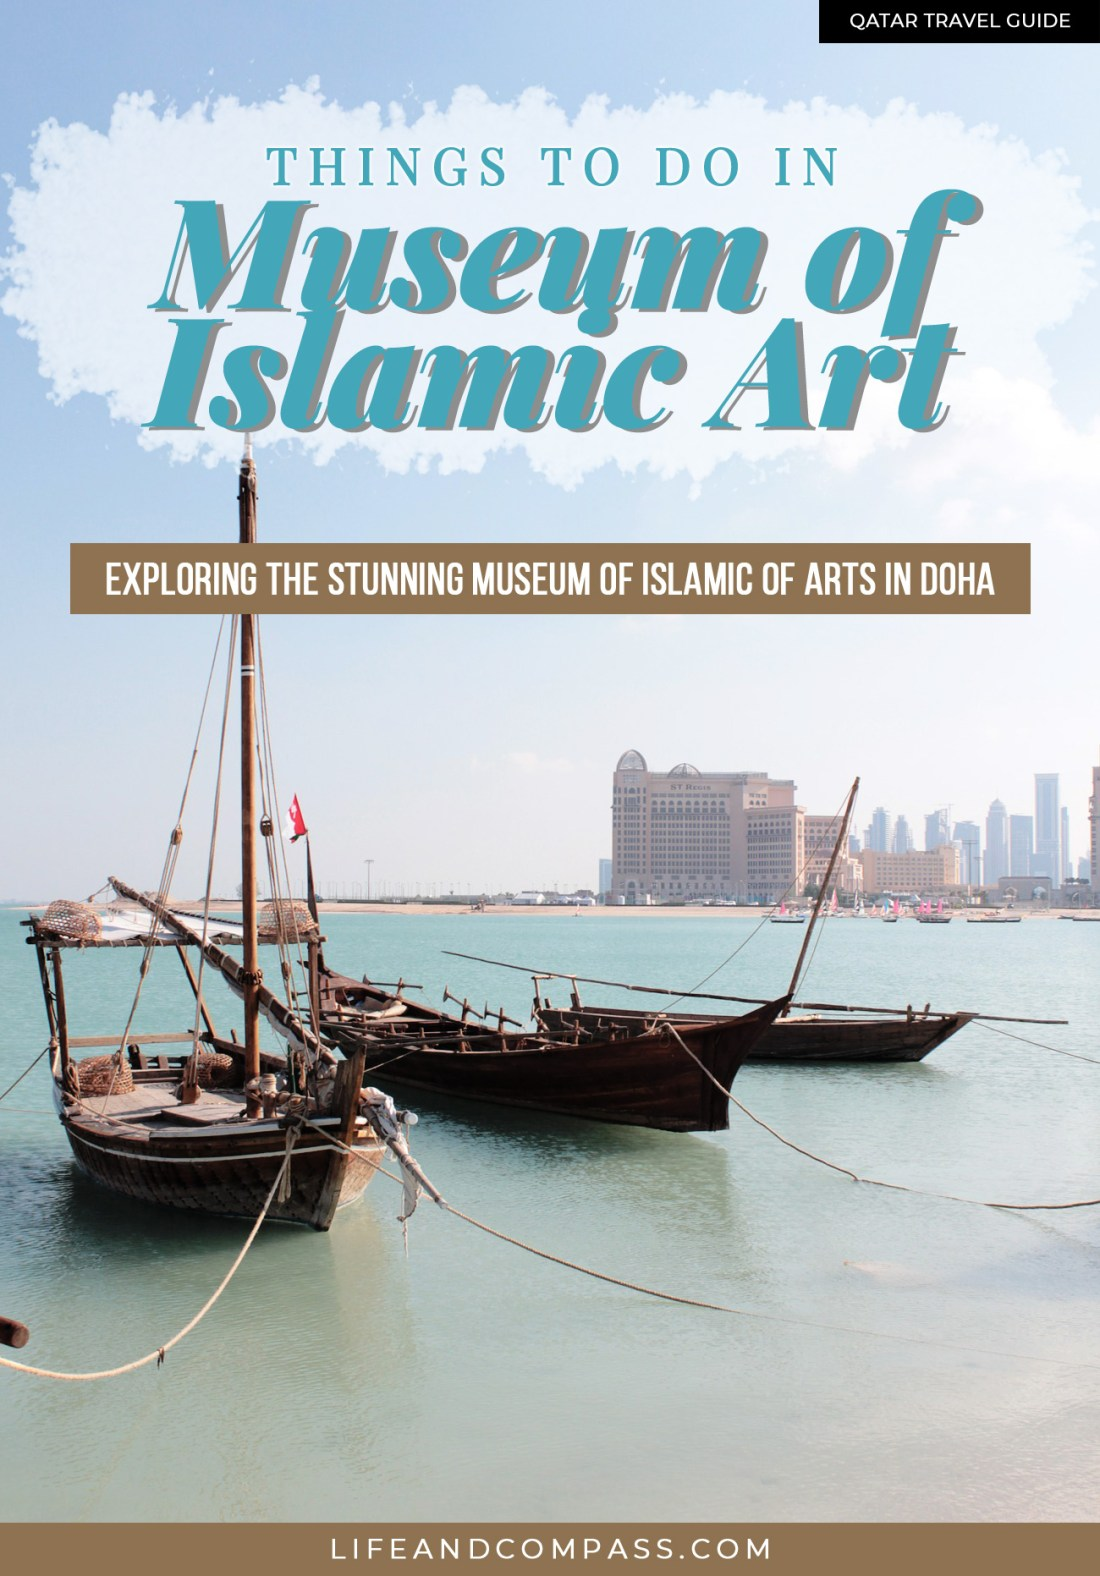 Visiting the Museum of Islamic Art in Doha, Qatar felt like walking through a work of art itself. It is one of Doha's must-see places and entry is free! It's one of the best things to do in Doha - discovering the beautiful arts housed in 5 floors of the Museum of Islamic Art - not to be missed!